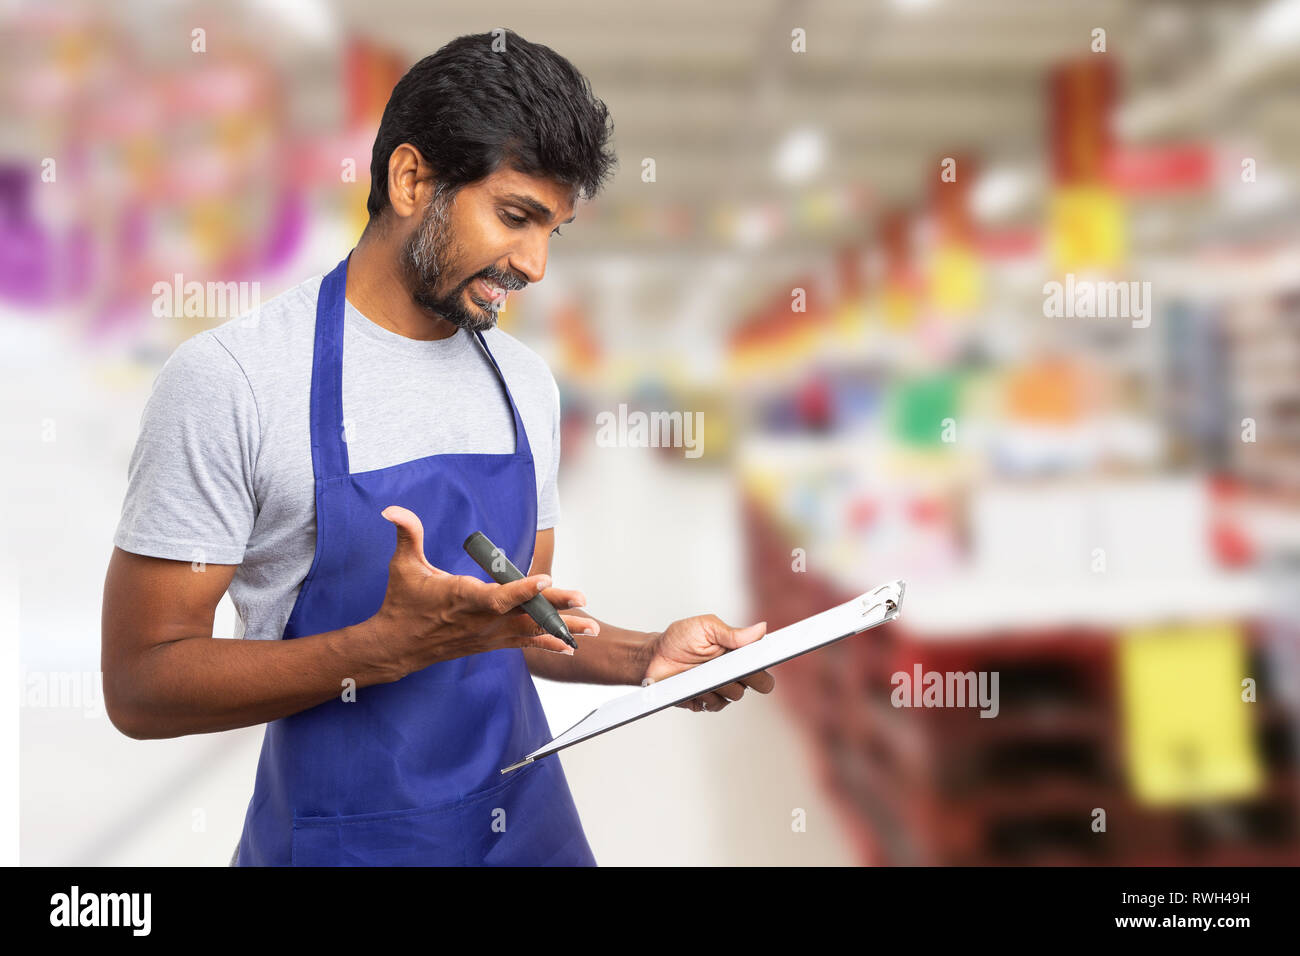 Indian Supermarket Stock Photos & Indian Supermarket Stock Images